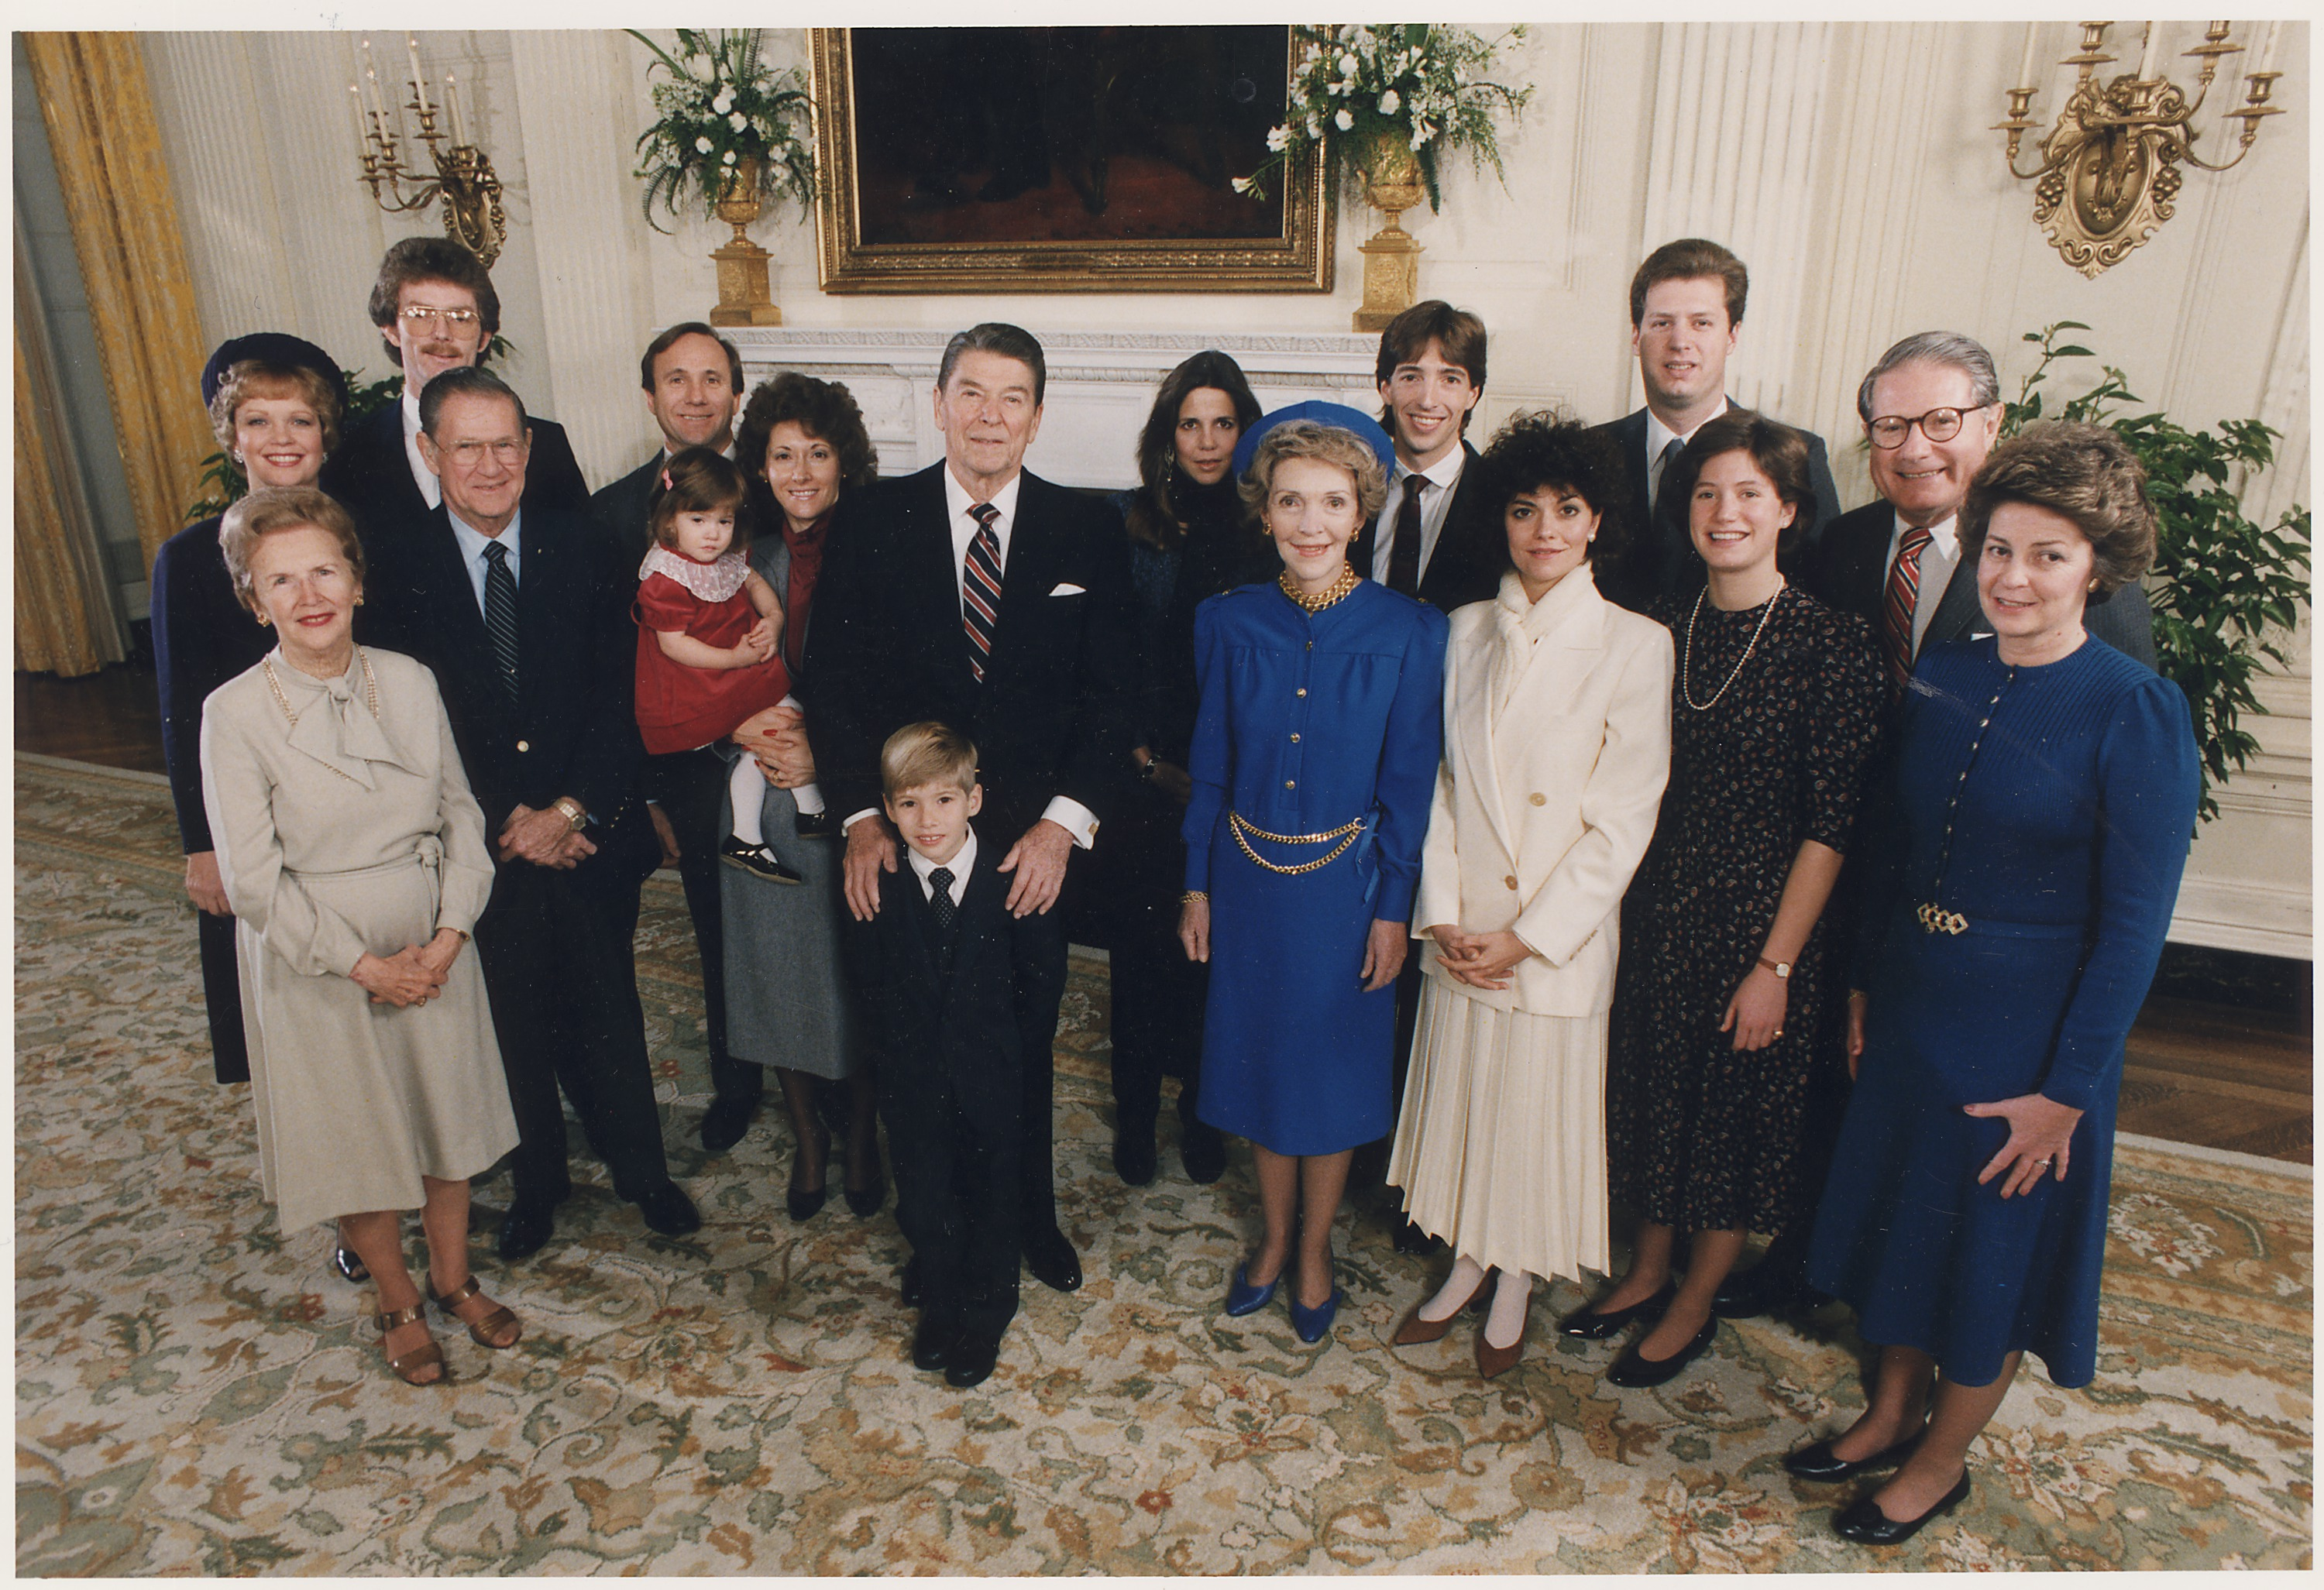 Jfk Oval Office File Photograph Of 1985 Inaugural Family Photo From Left